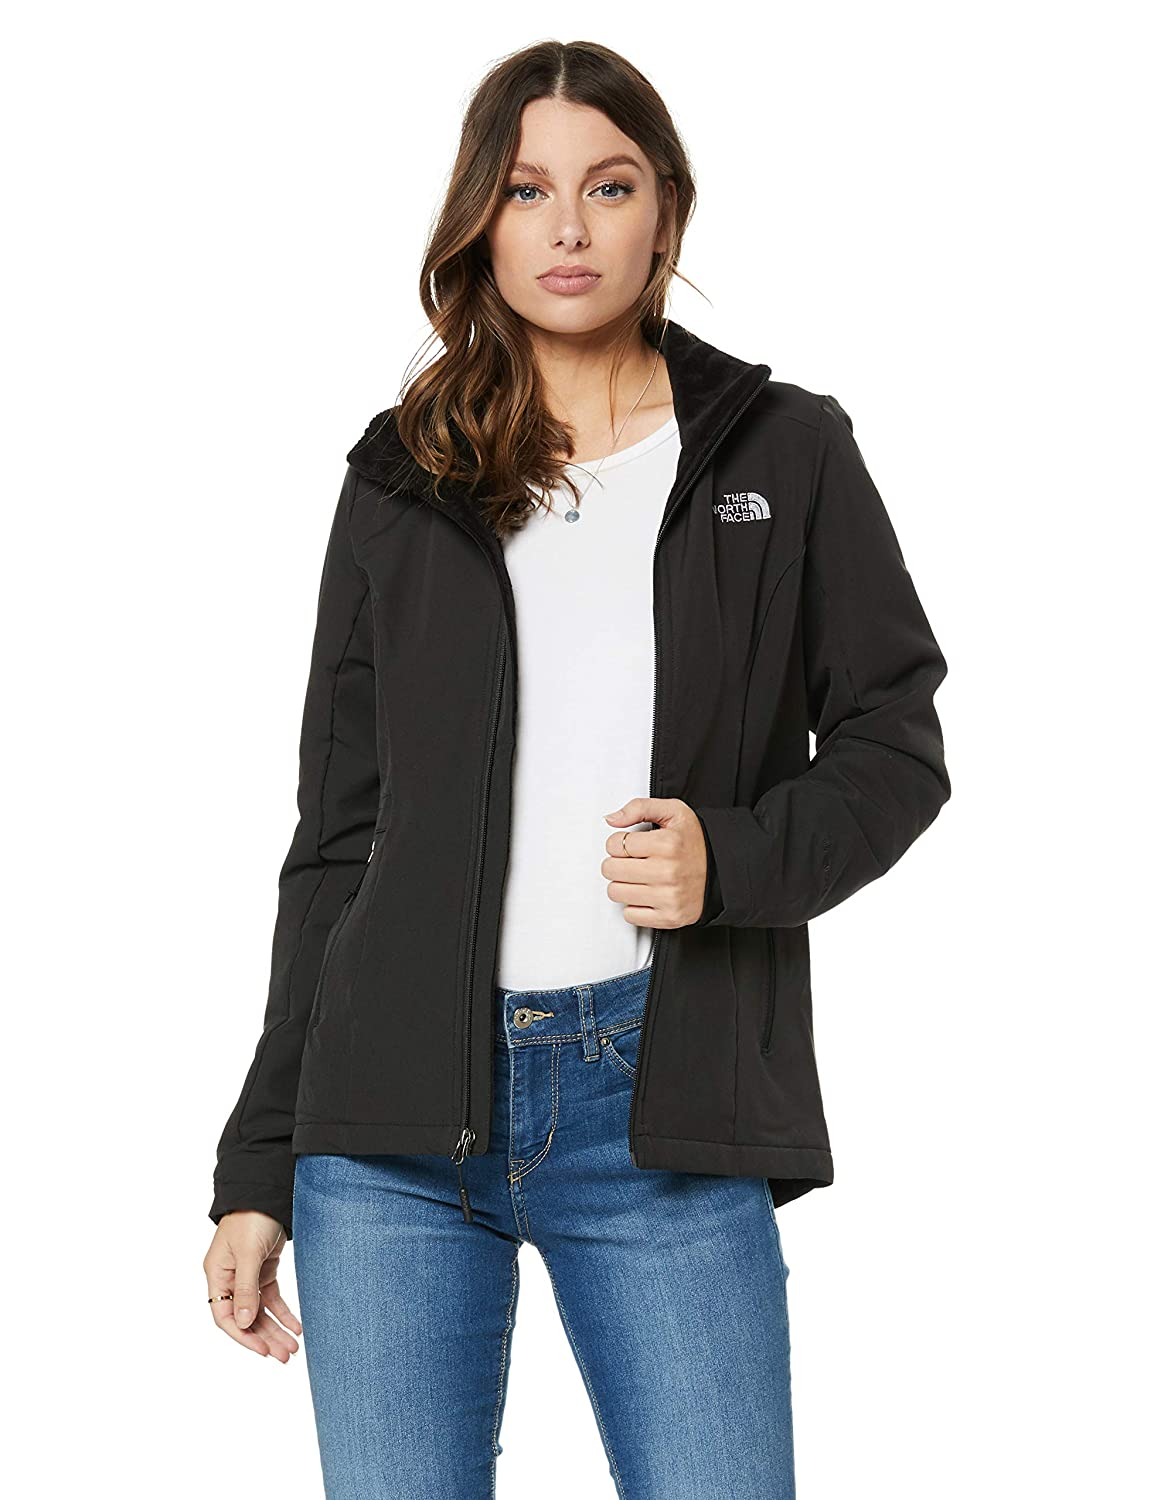 Tnf Black Large The North Face Women's Shelbe Raschel Hoodie